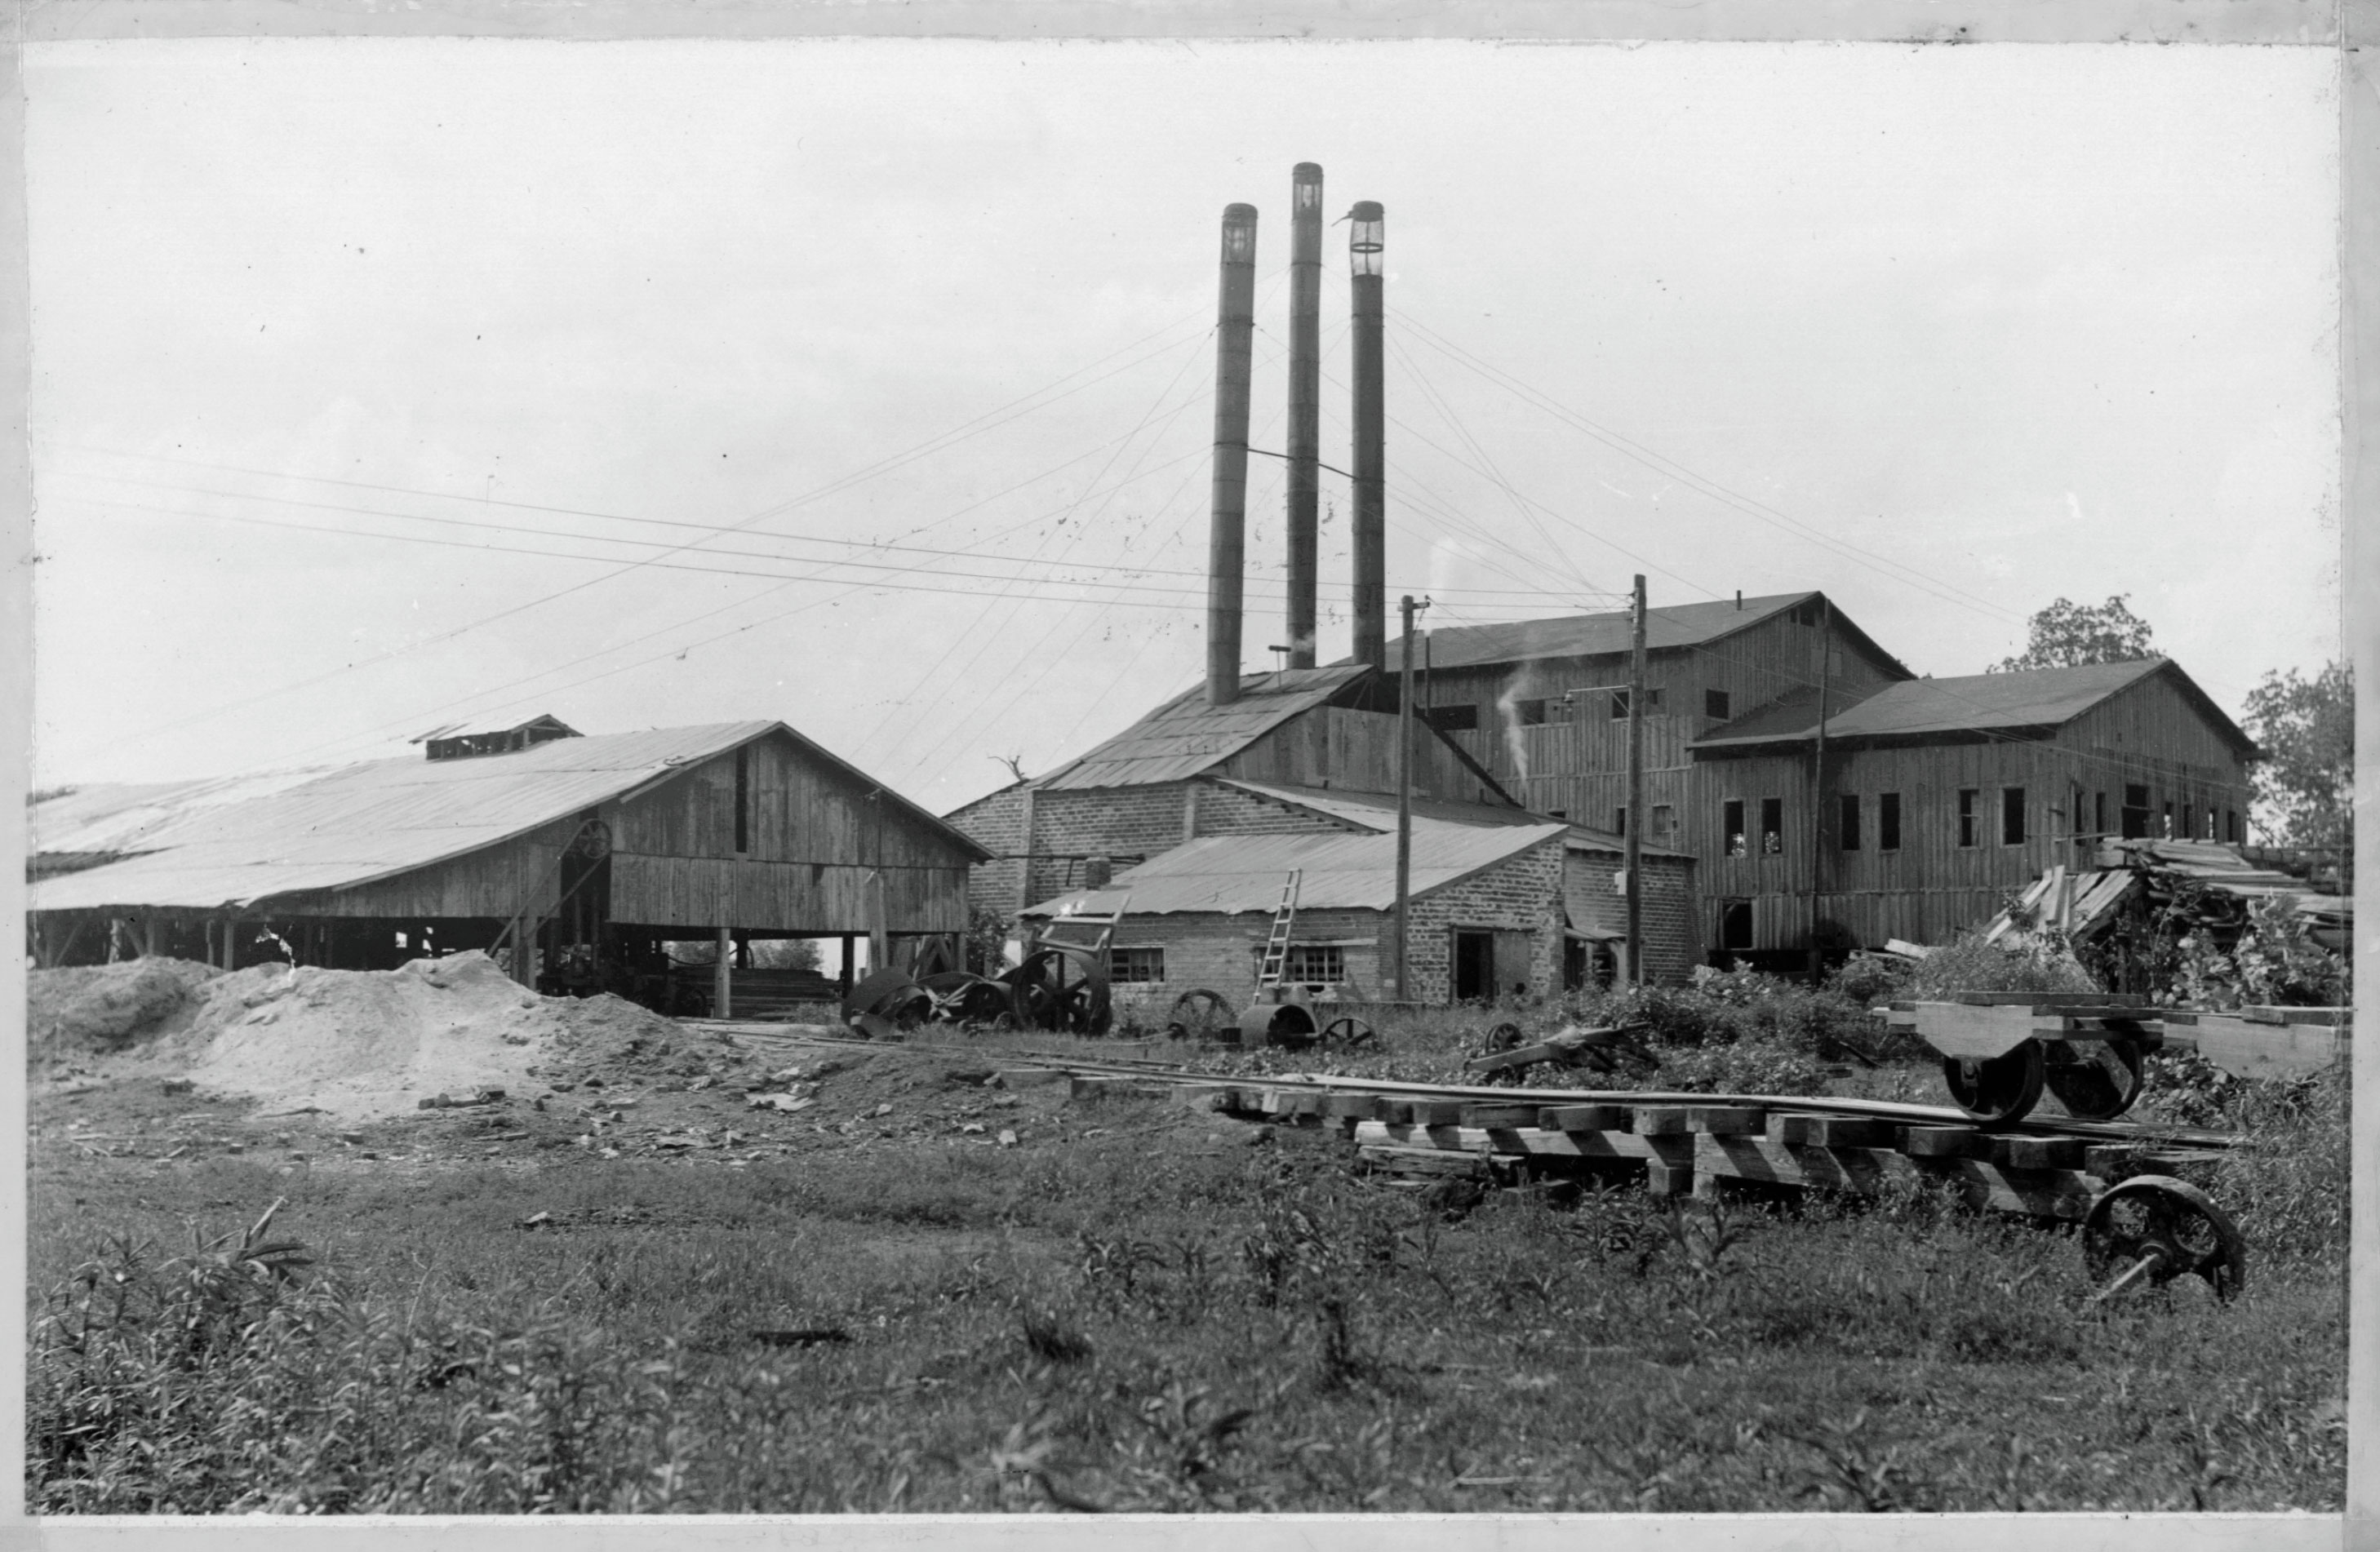 Black and white photograph of the buildings that housed the sawmill that was located on what is now Parkin Archeological State Park.